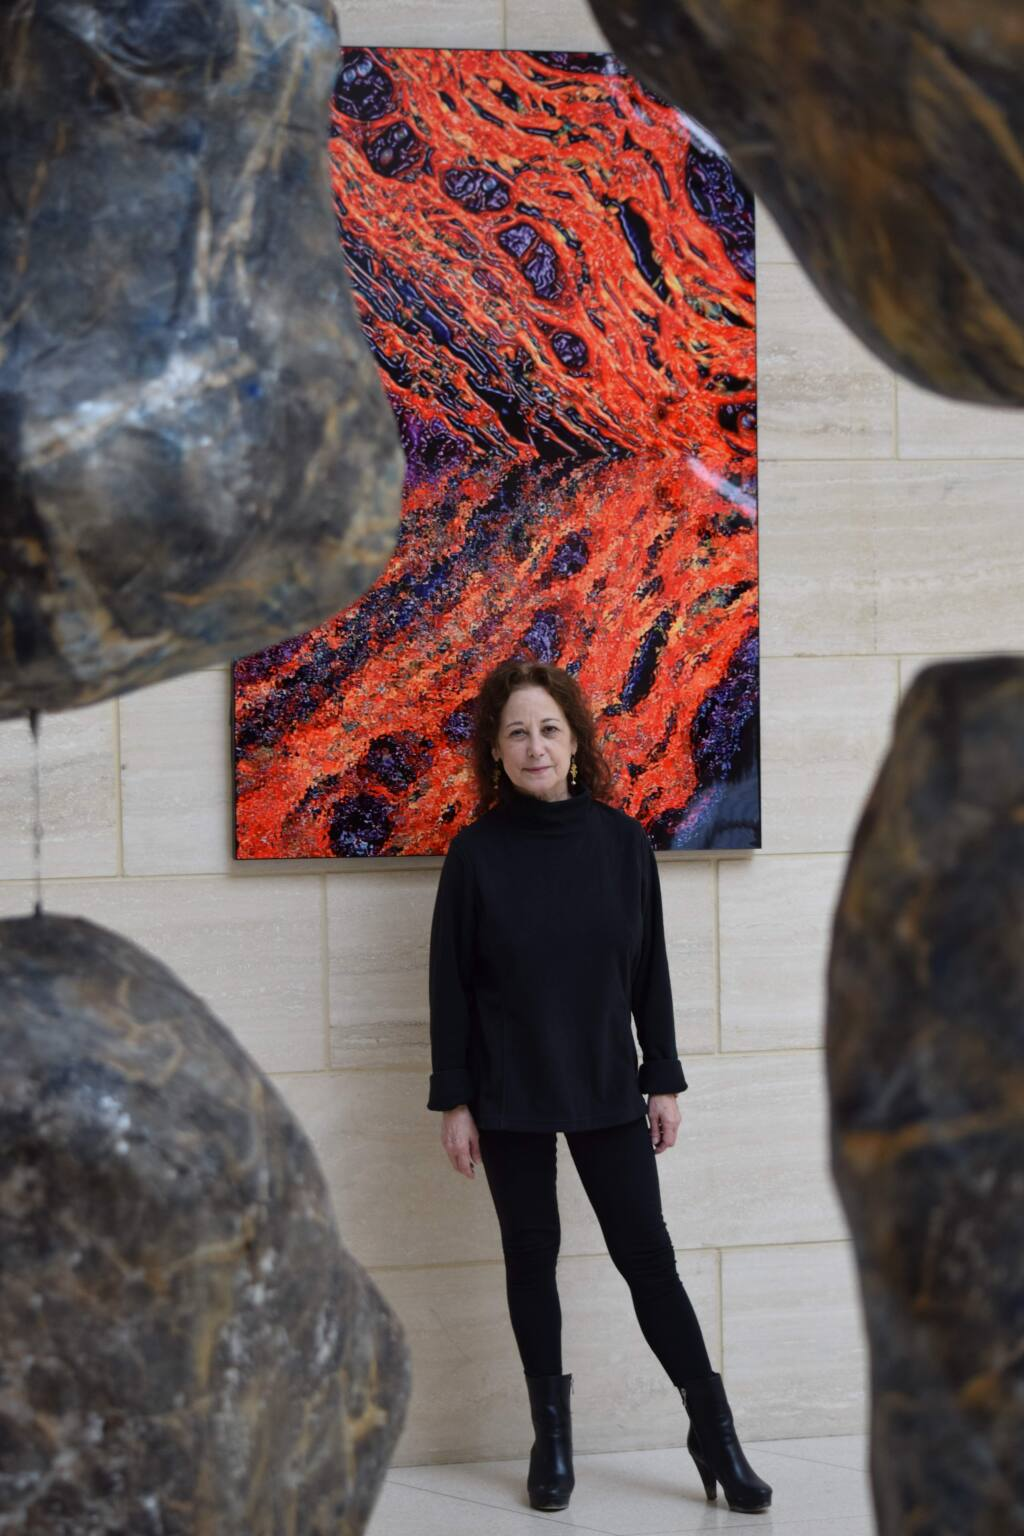 Judy Campisi, Ph.D., co-founder of Novato-based Unity Biotechnology, studies senescent cells and drugs to kill them. The Buck Institute for Age Research art behind her is collagen, enlarged.